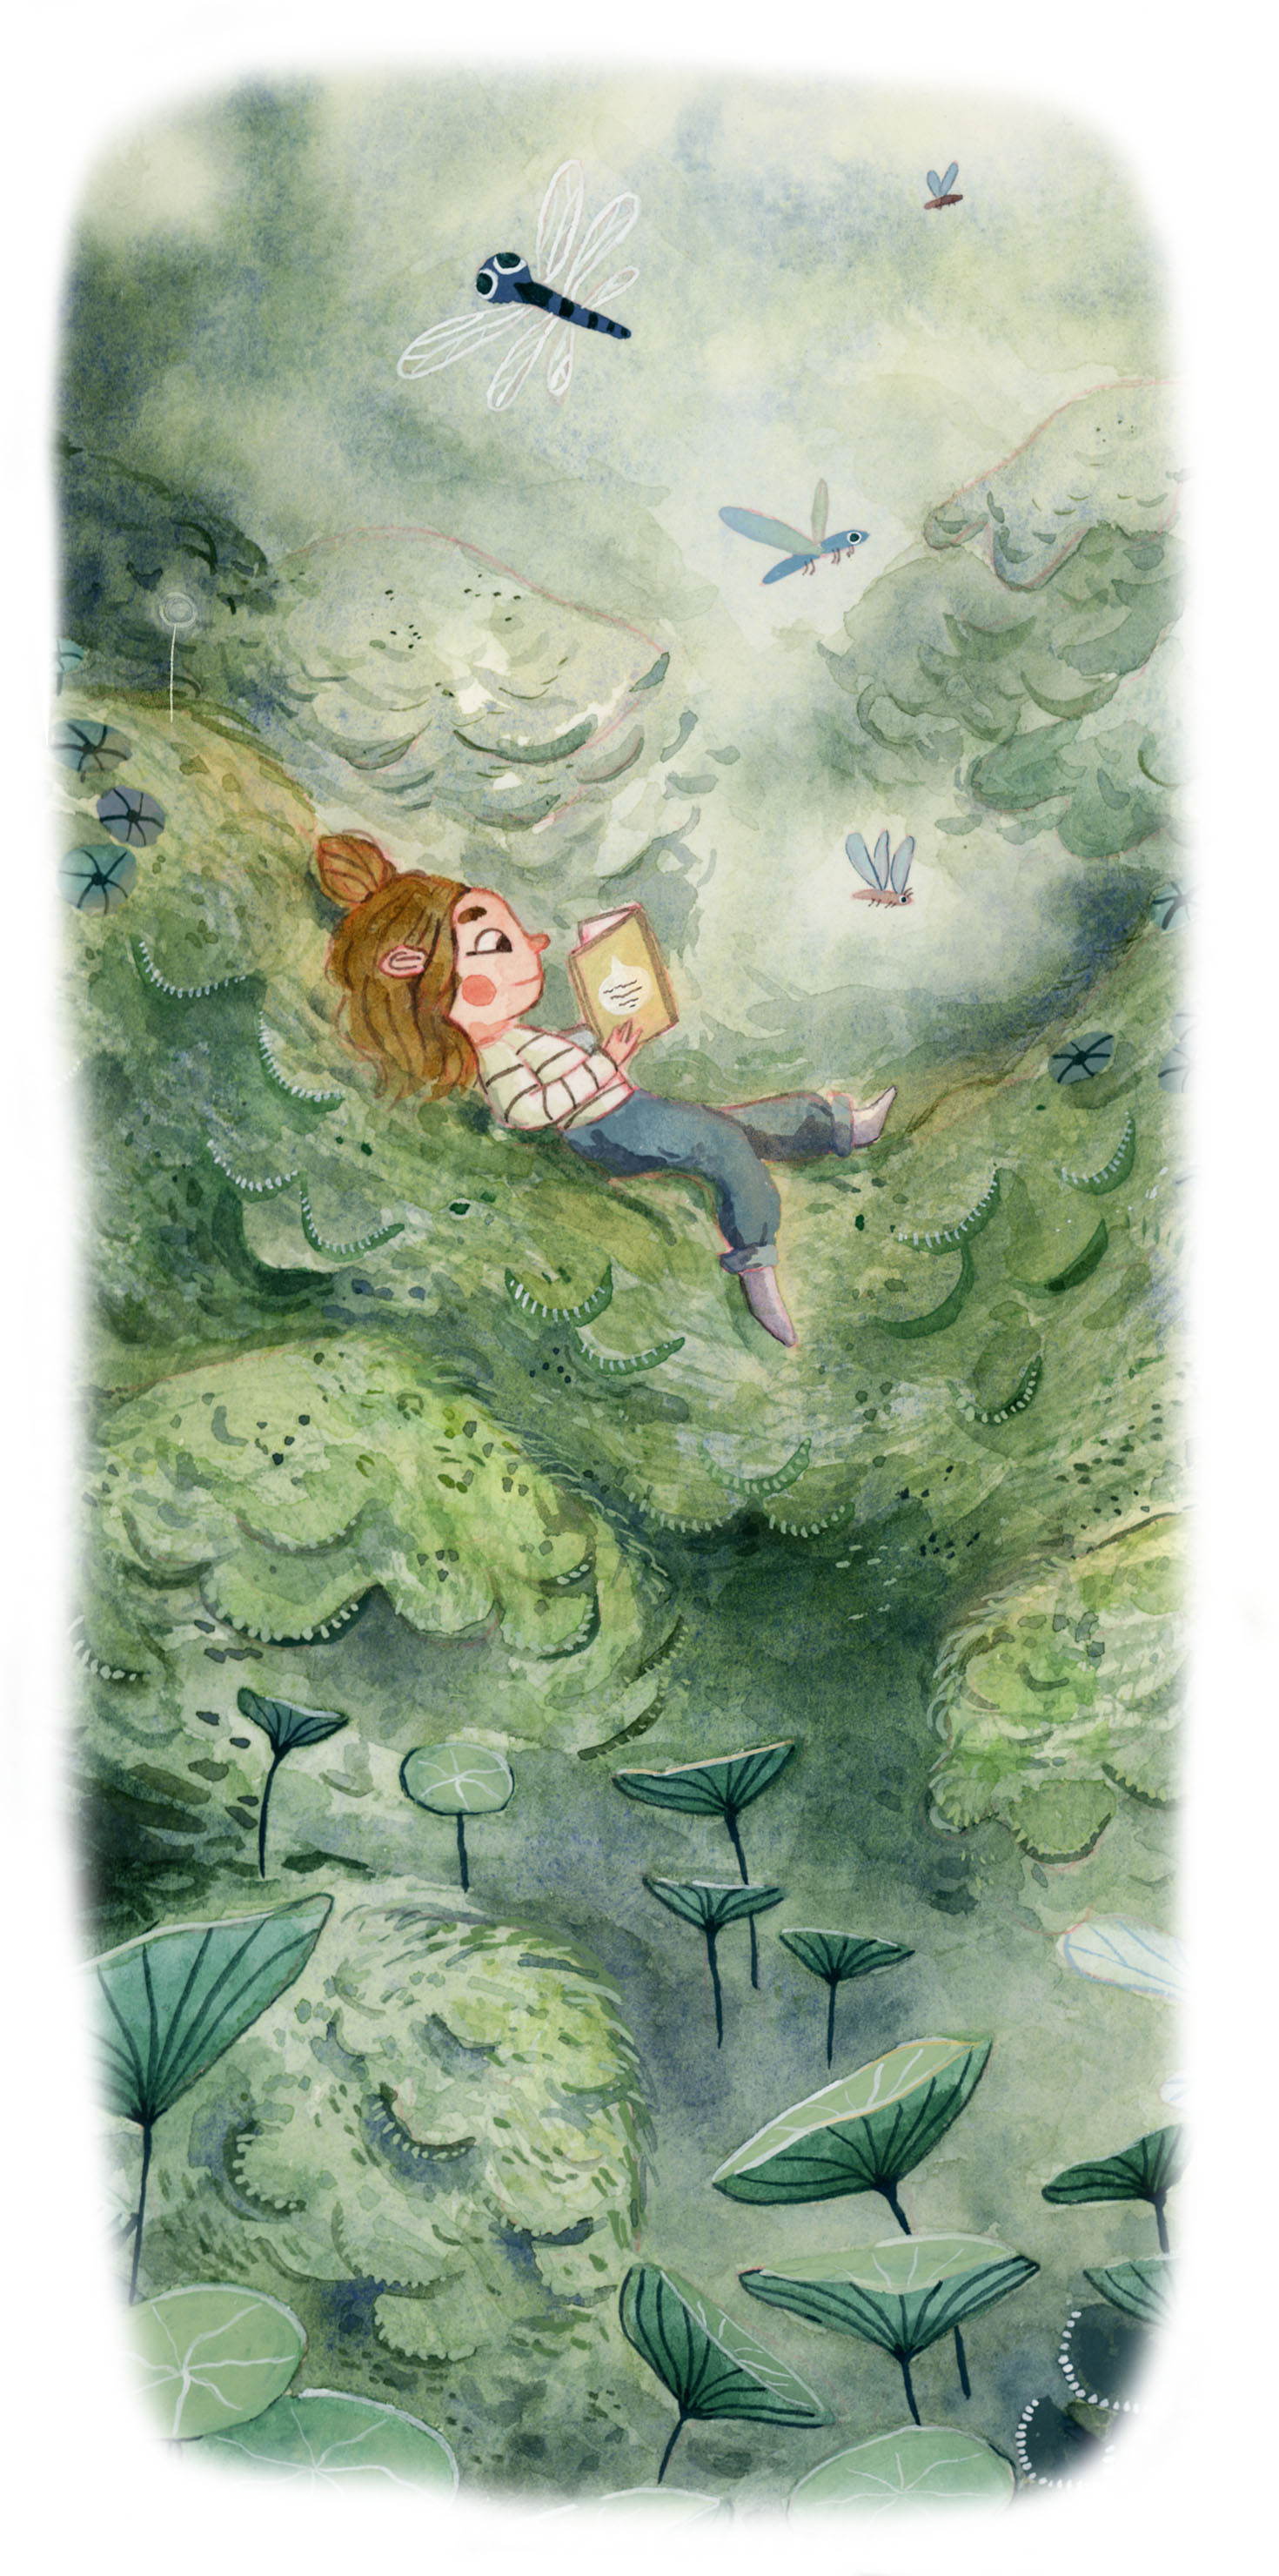 girl-reading-in-forest-bio.jpg